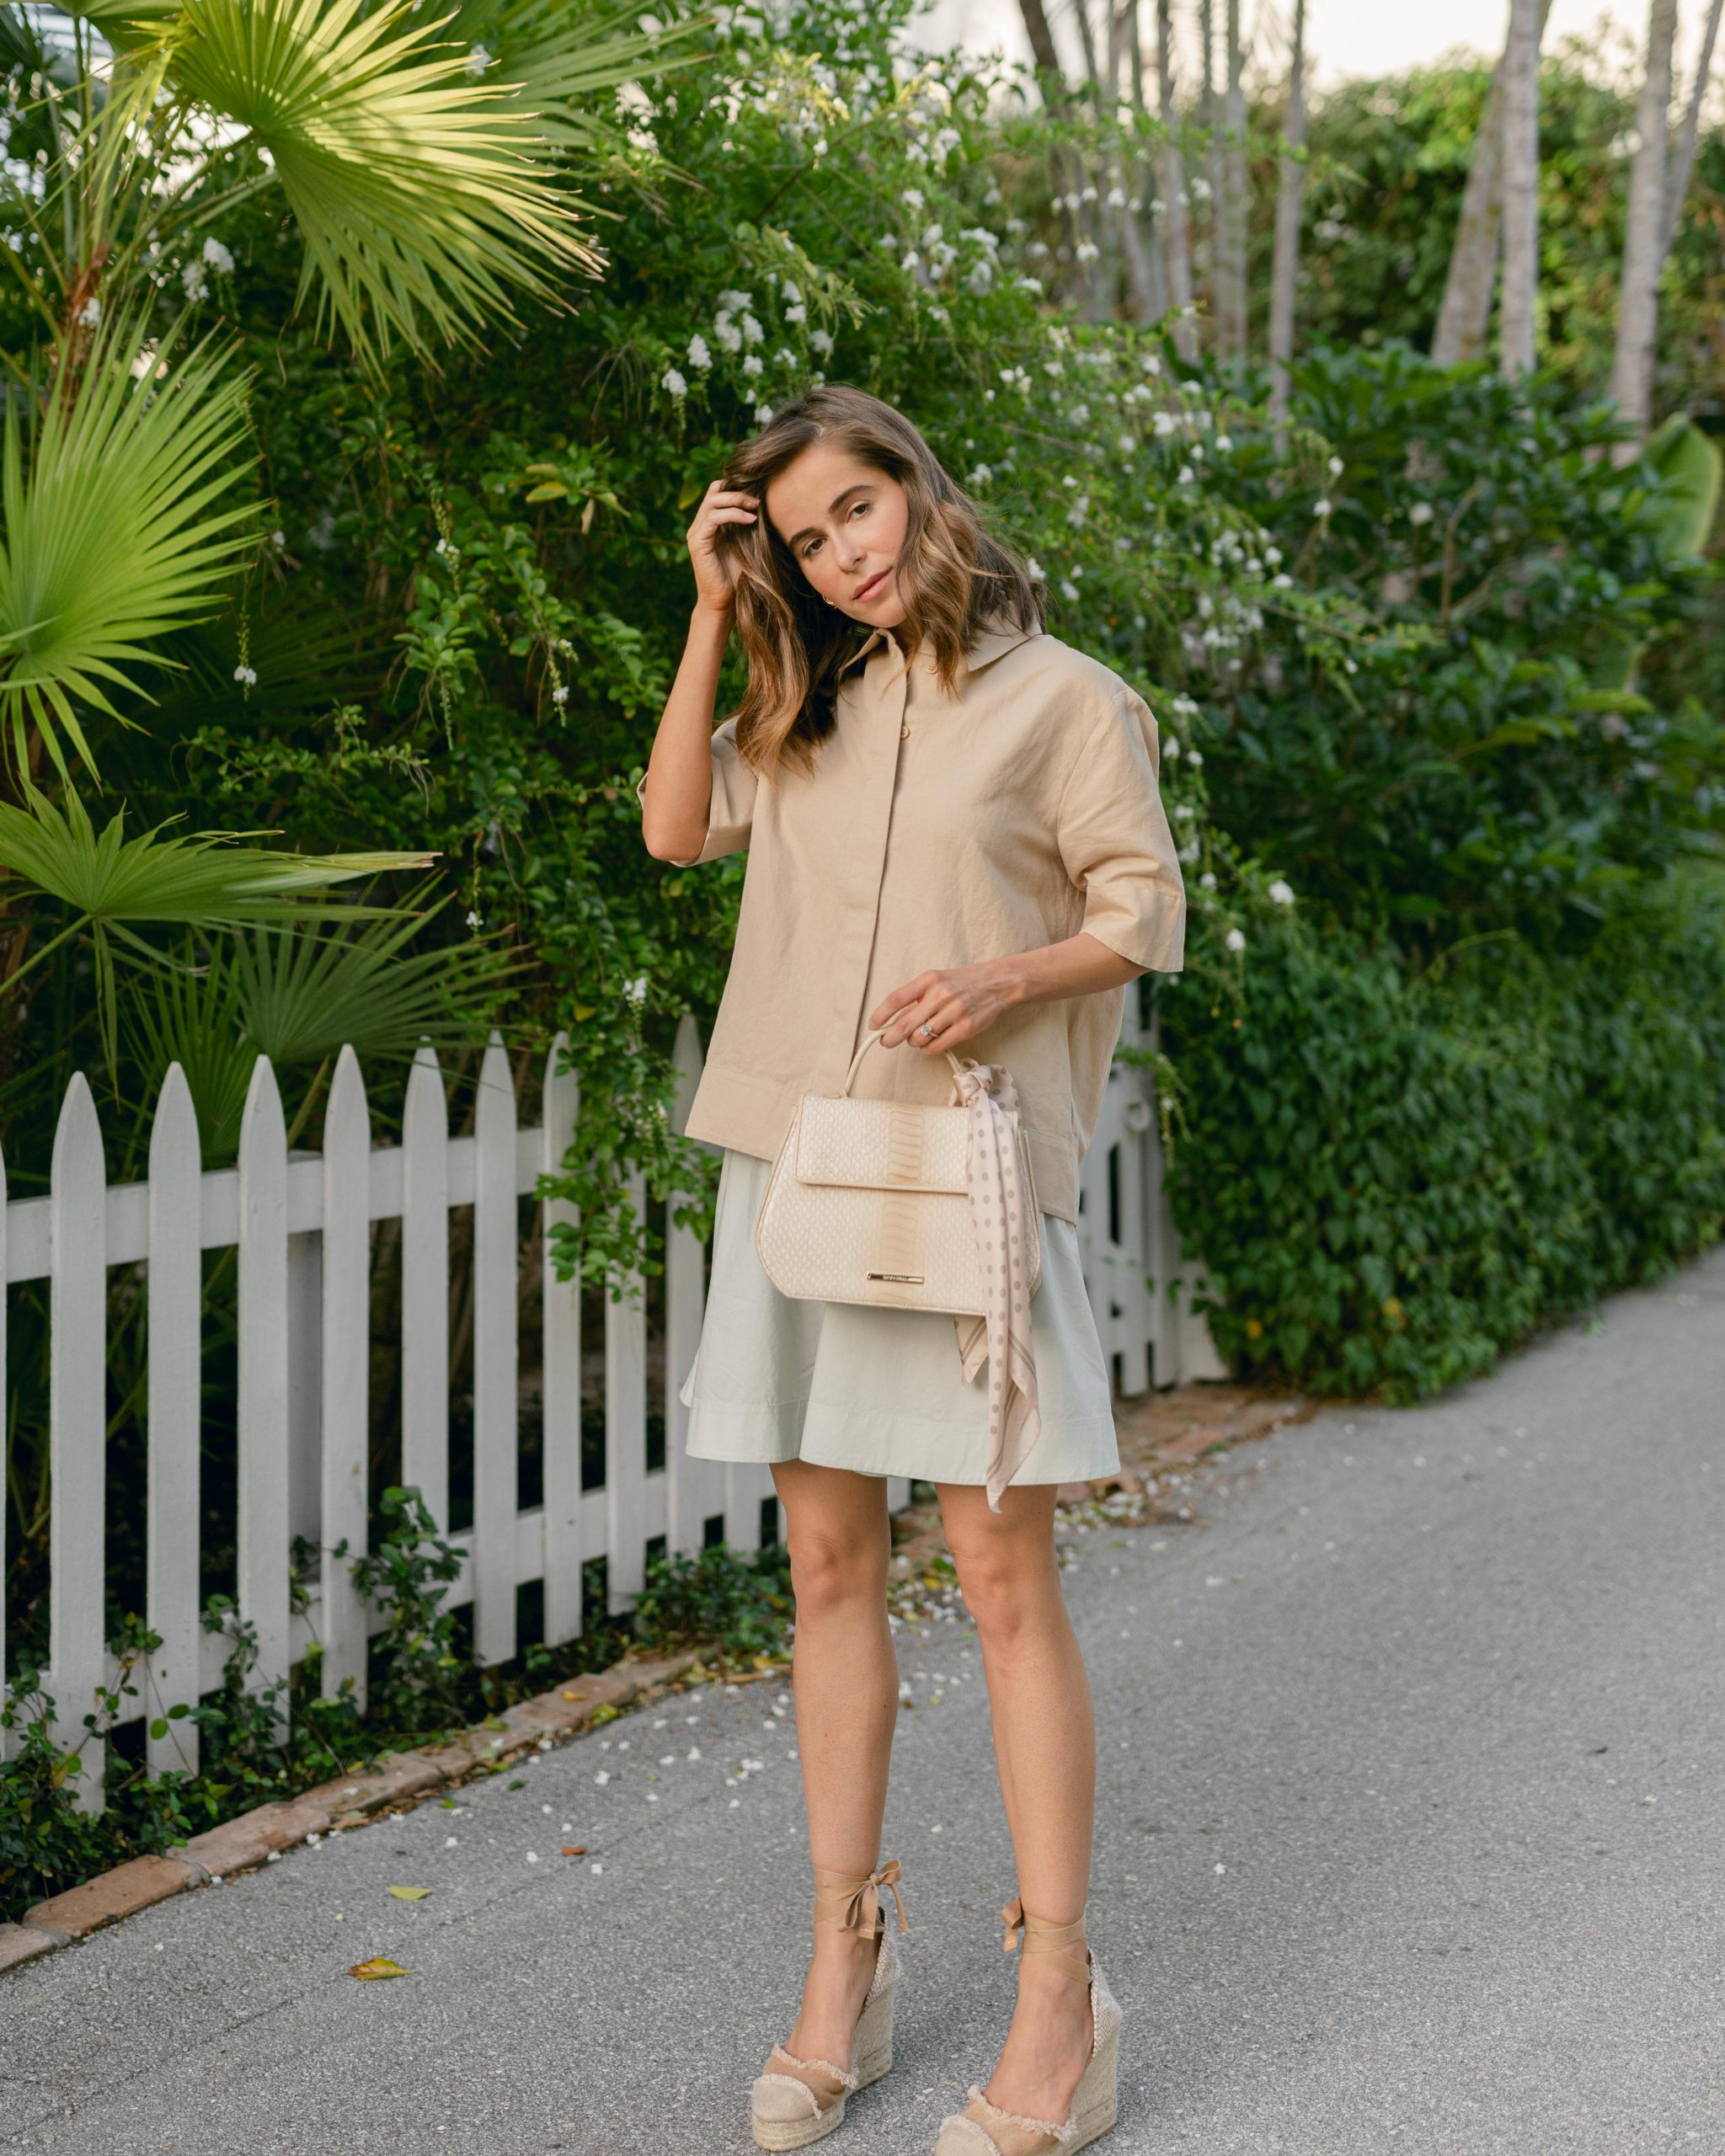 Featuring What's In My Handbag by Fashion Blogger Stephanie Hill on The Style Bungalow